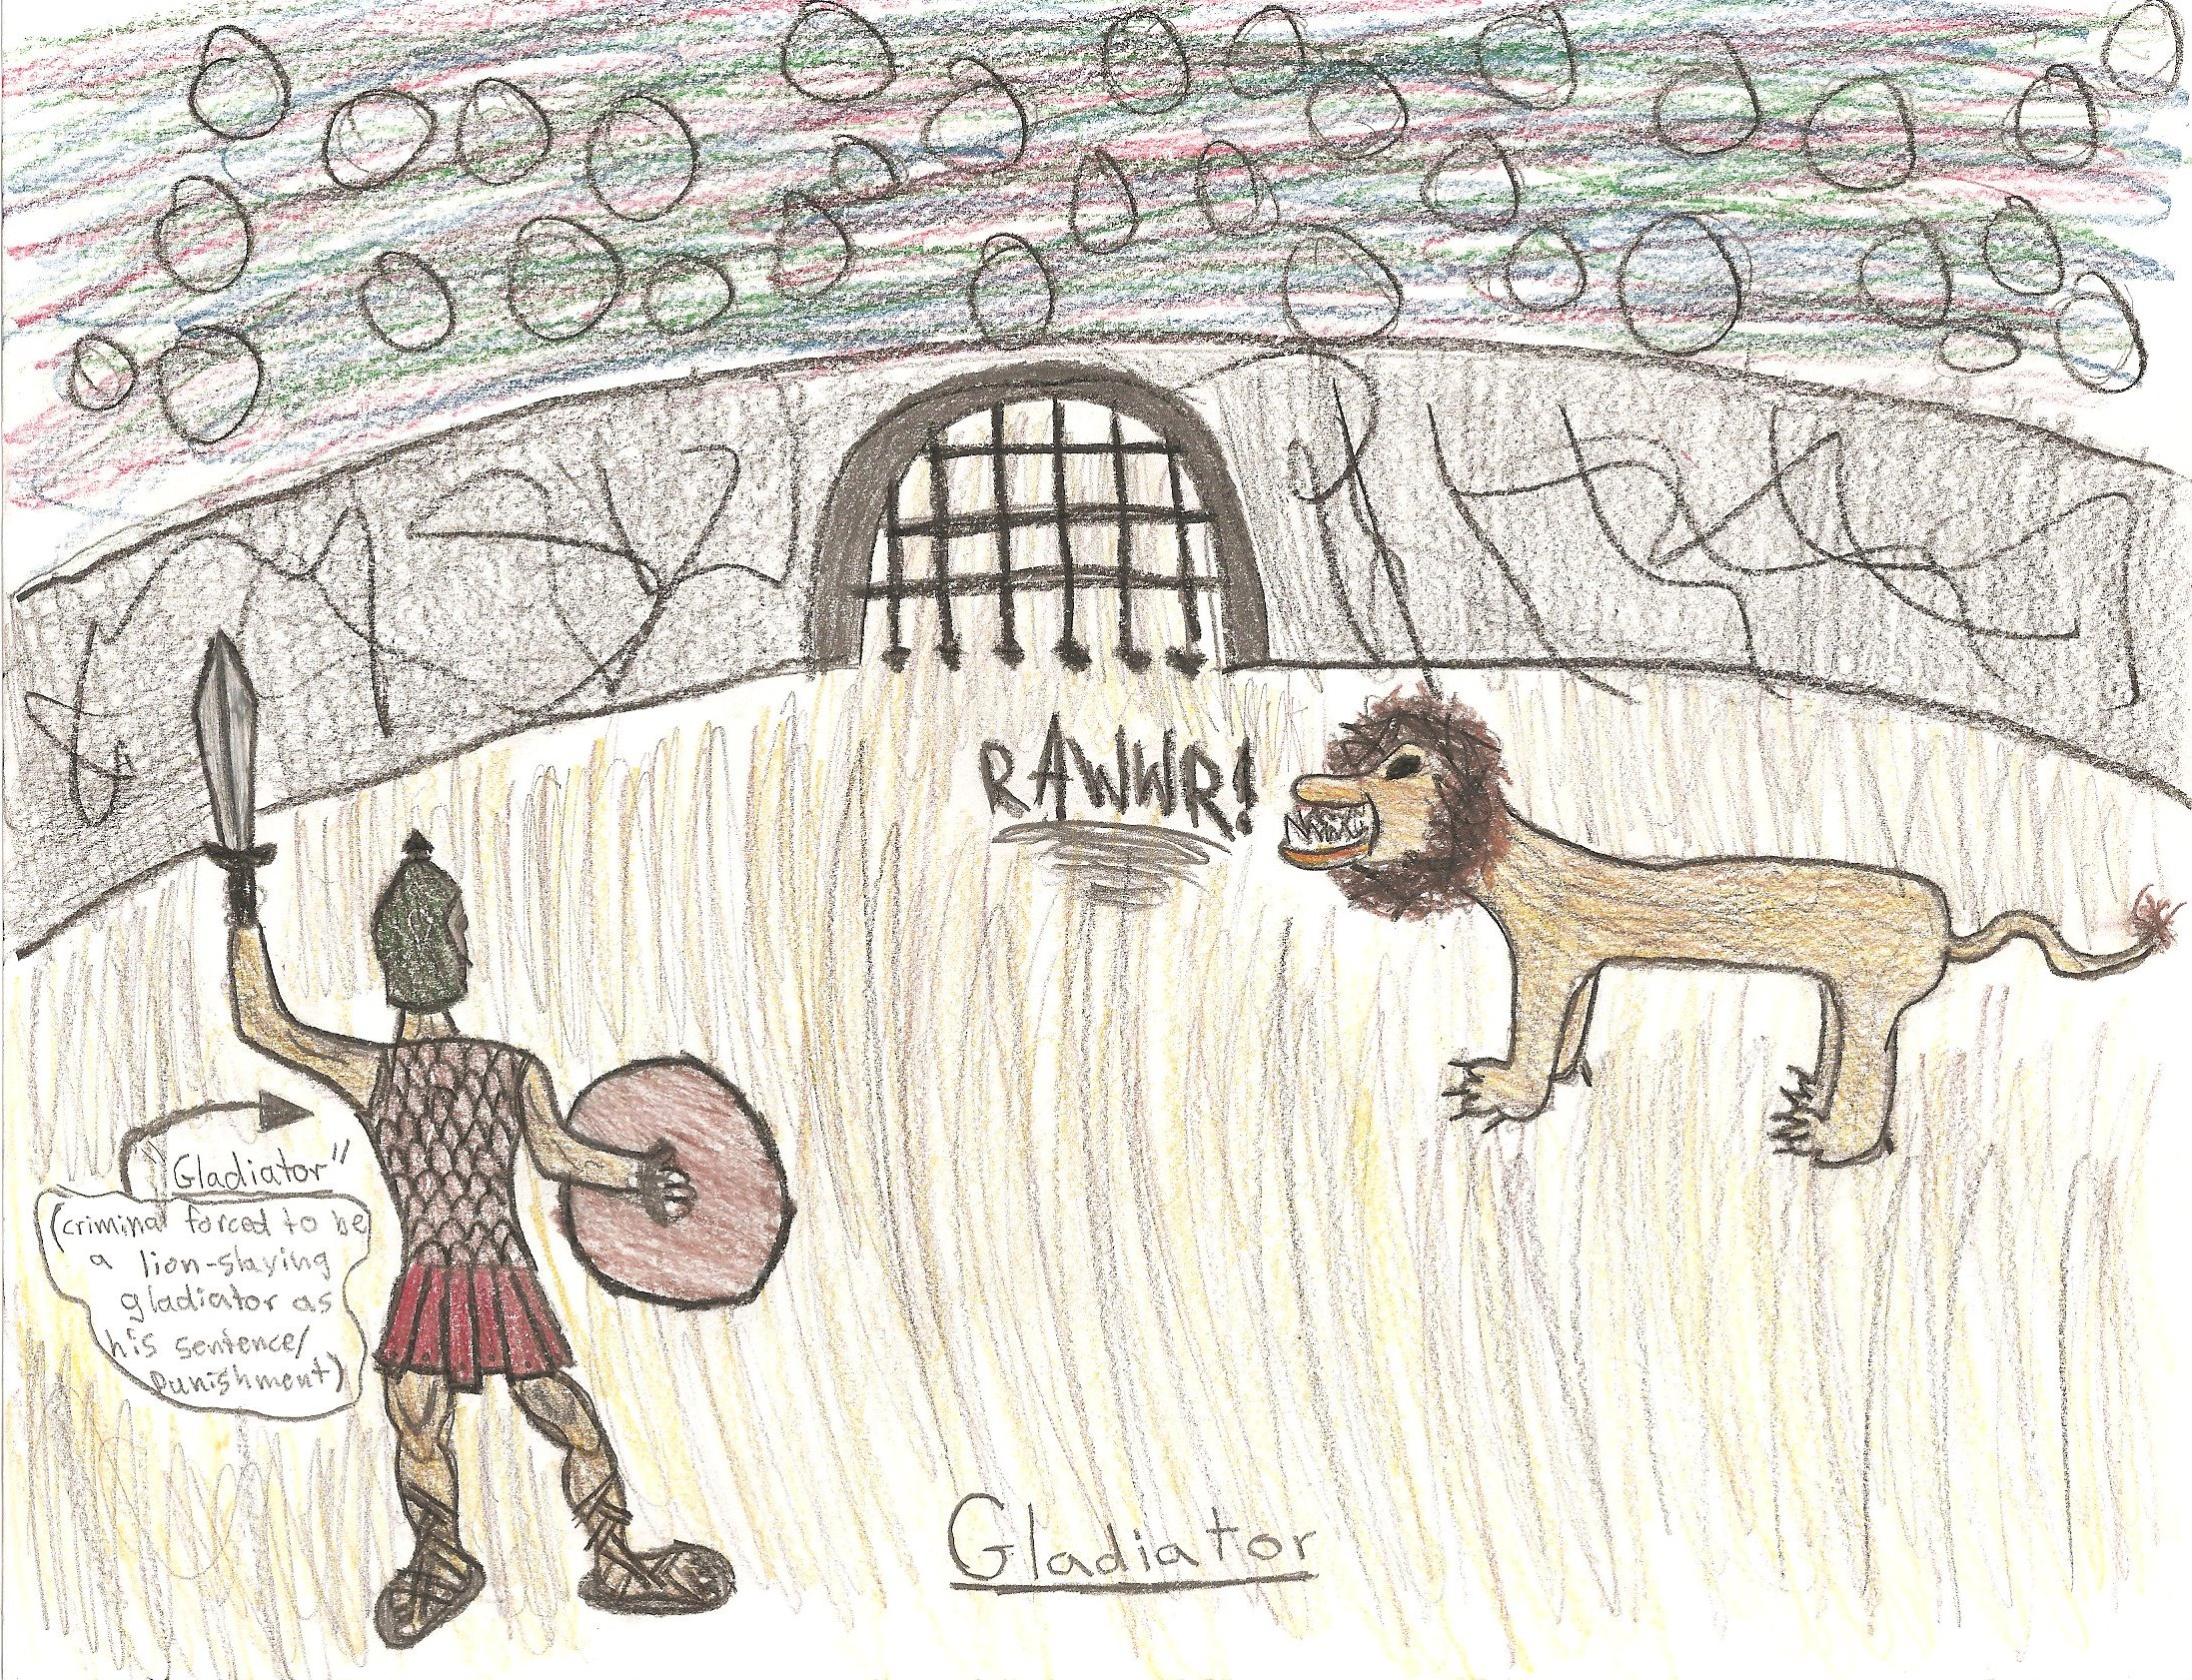 Roman Gladiator Drawing Gladiator Gladiator